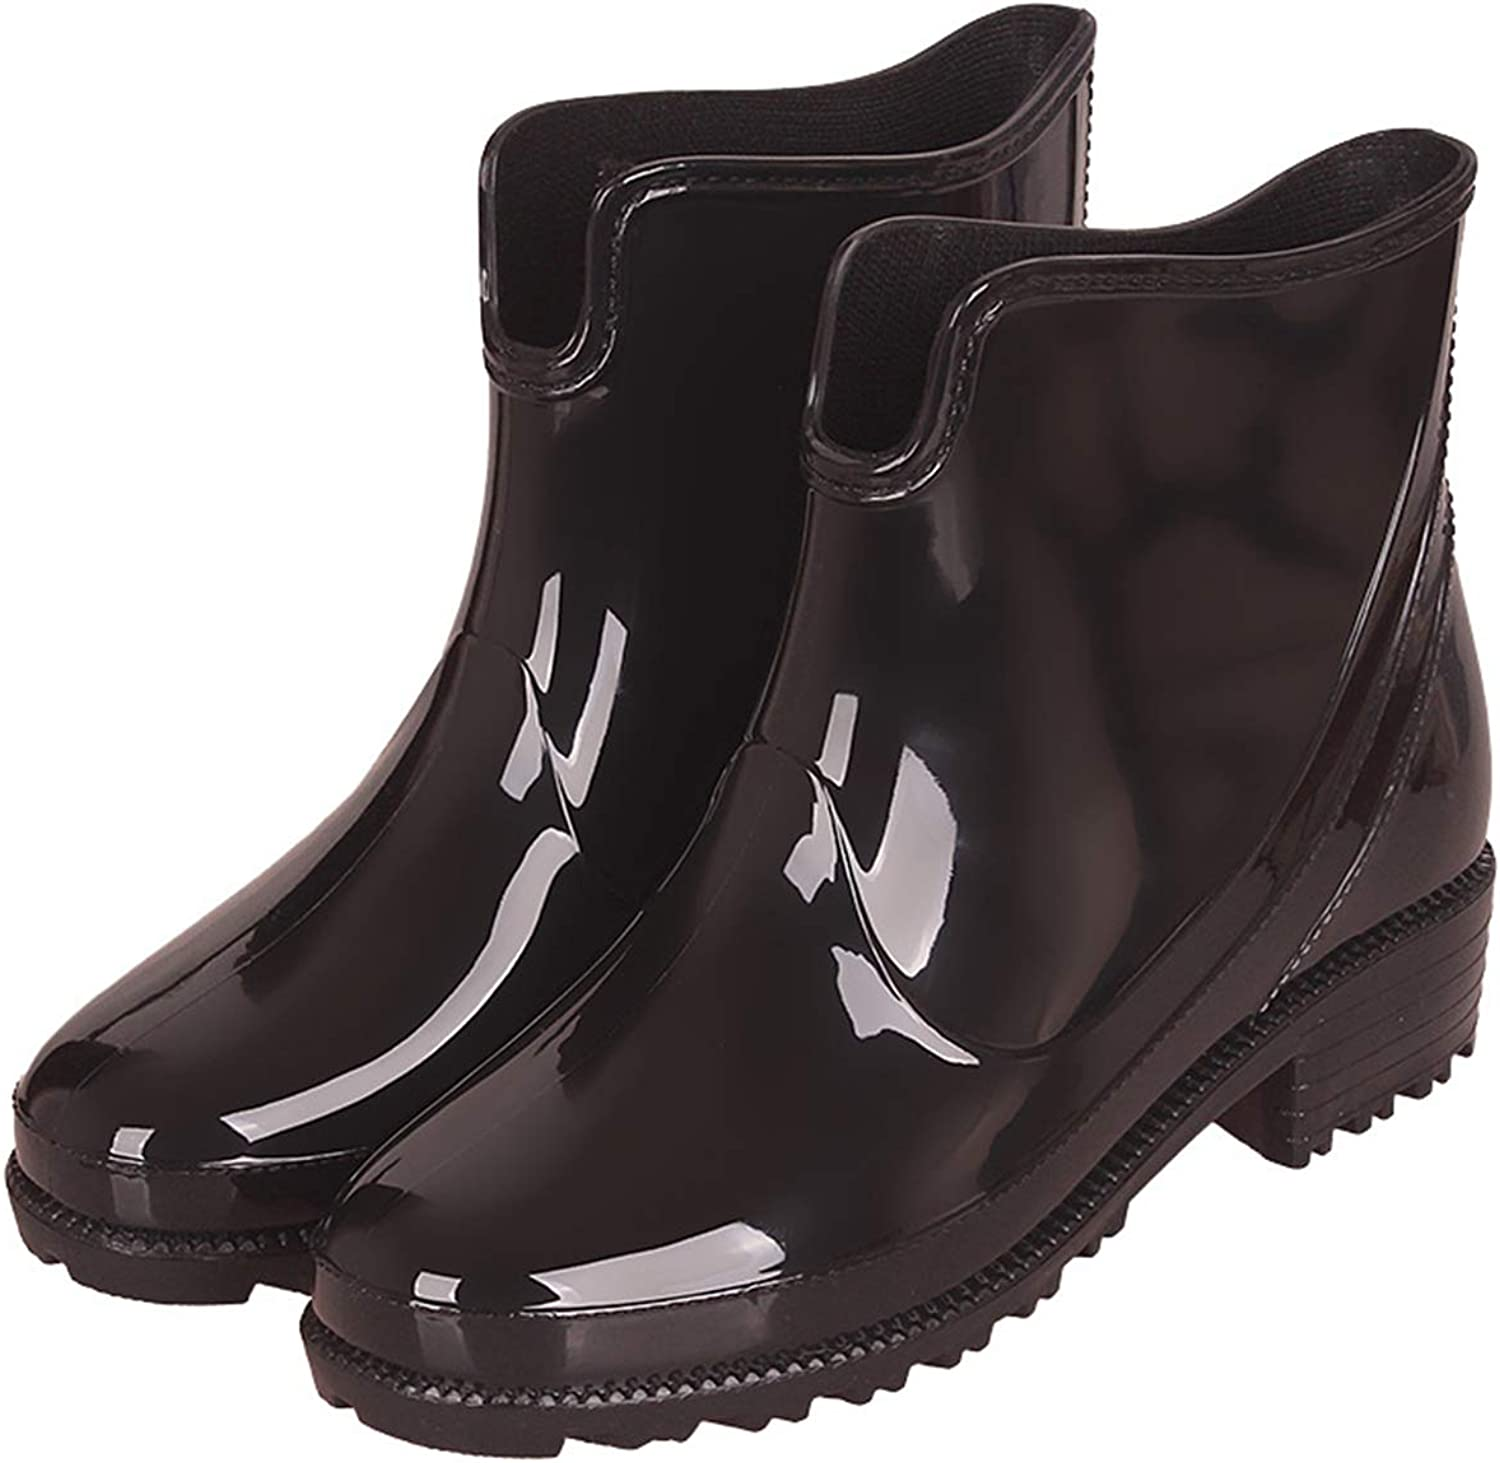 Rain Boots Ladies Fashion Water shoes Low to Help Women's rain Boots(-